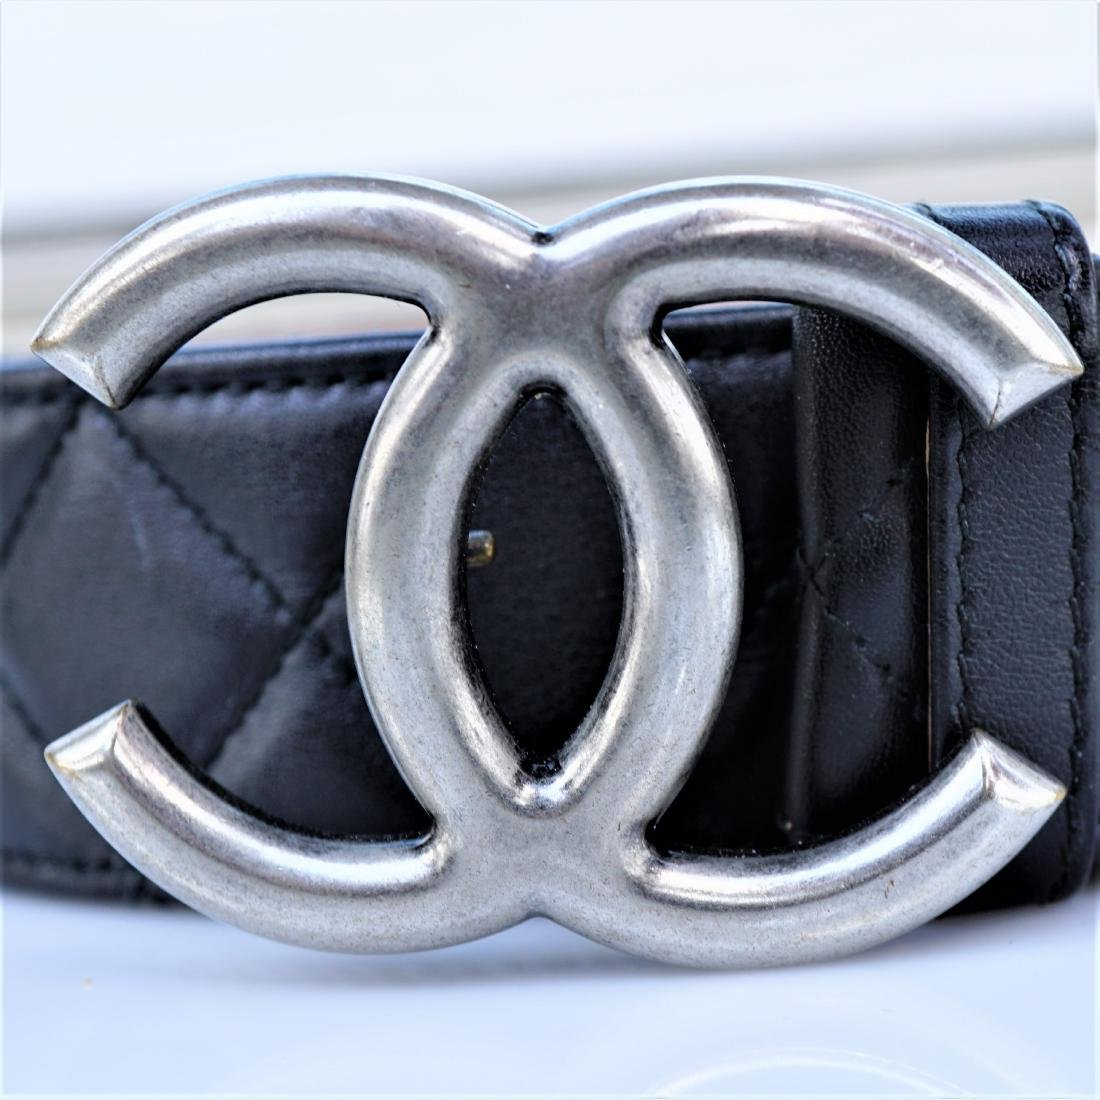 Chanel Quilted Lambskin Leather Belt - 3